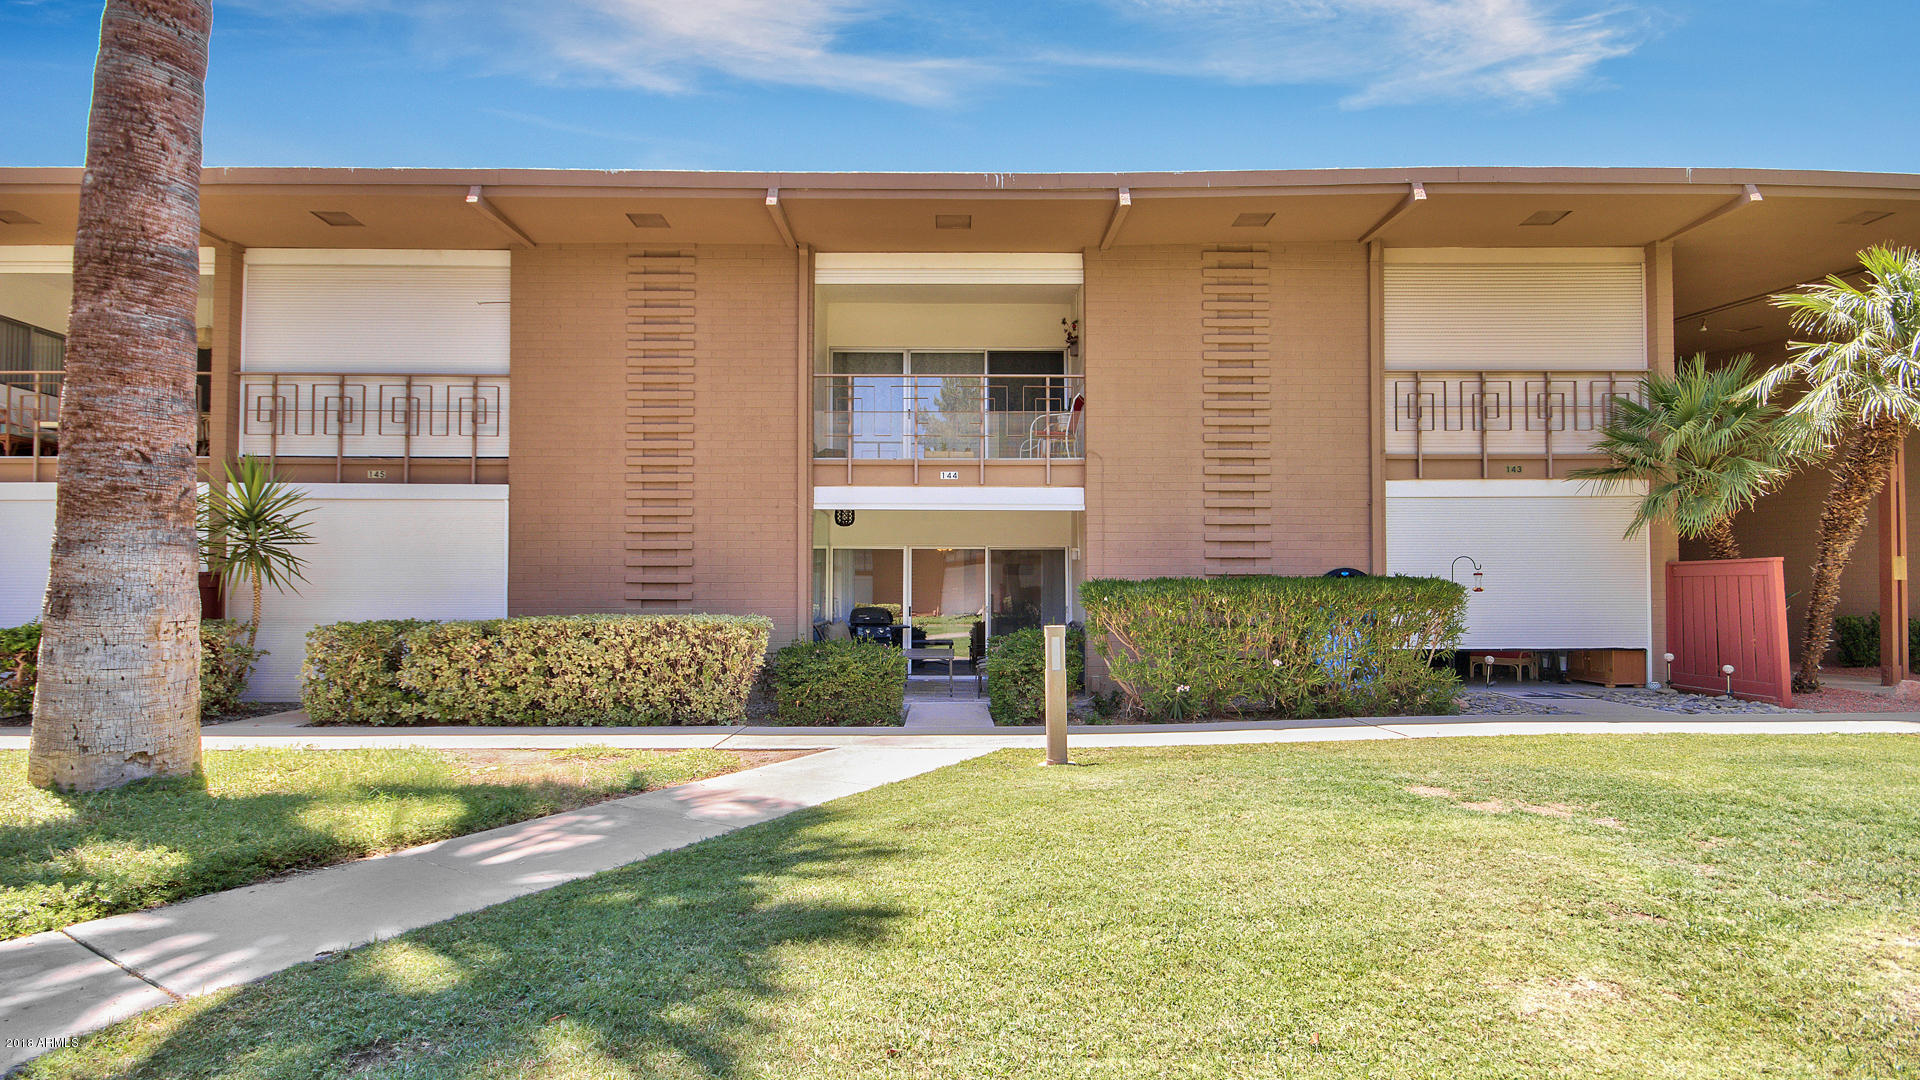 MLS 5861907 6125 E INDIAN SCHOOL Road Unit 144, Scottsdale, AZ Scottsdale AZ Condo or Townhome